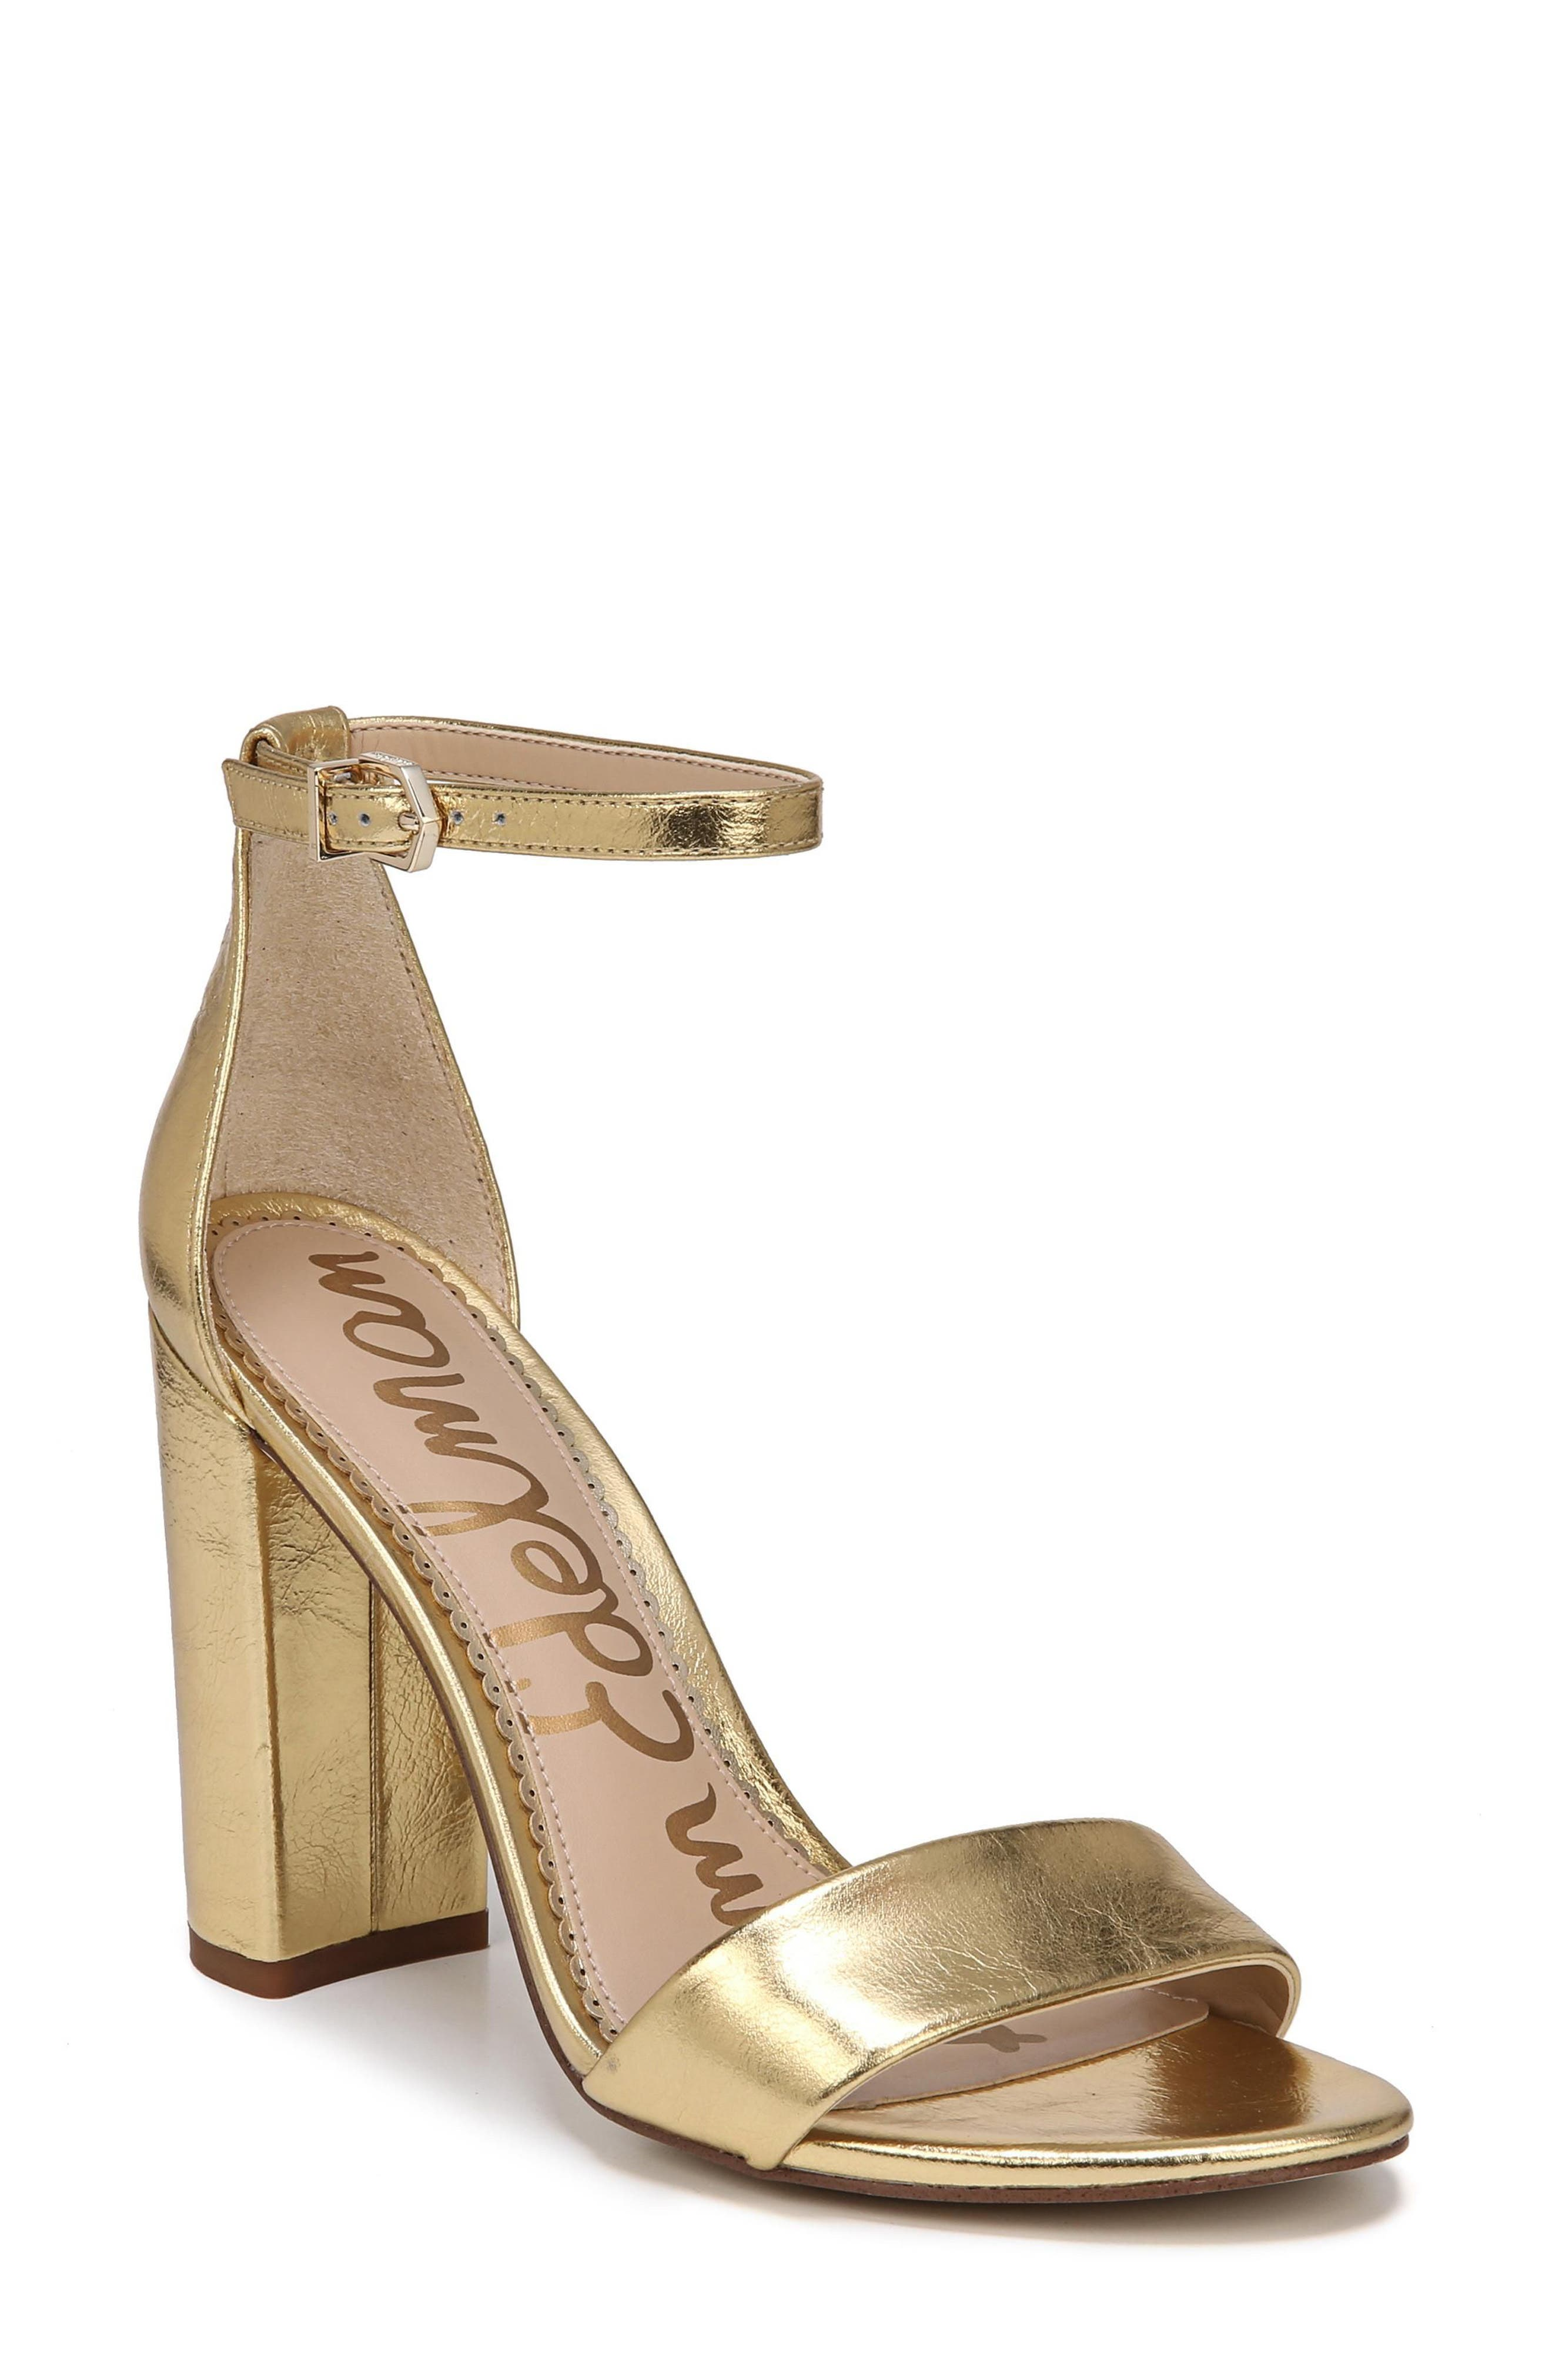 Yaro Ankle Strap Sandal,                         Main,                         color, Bright Gold Leather